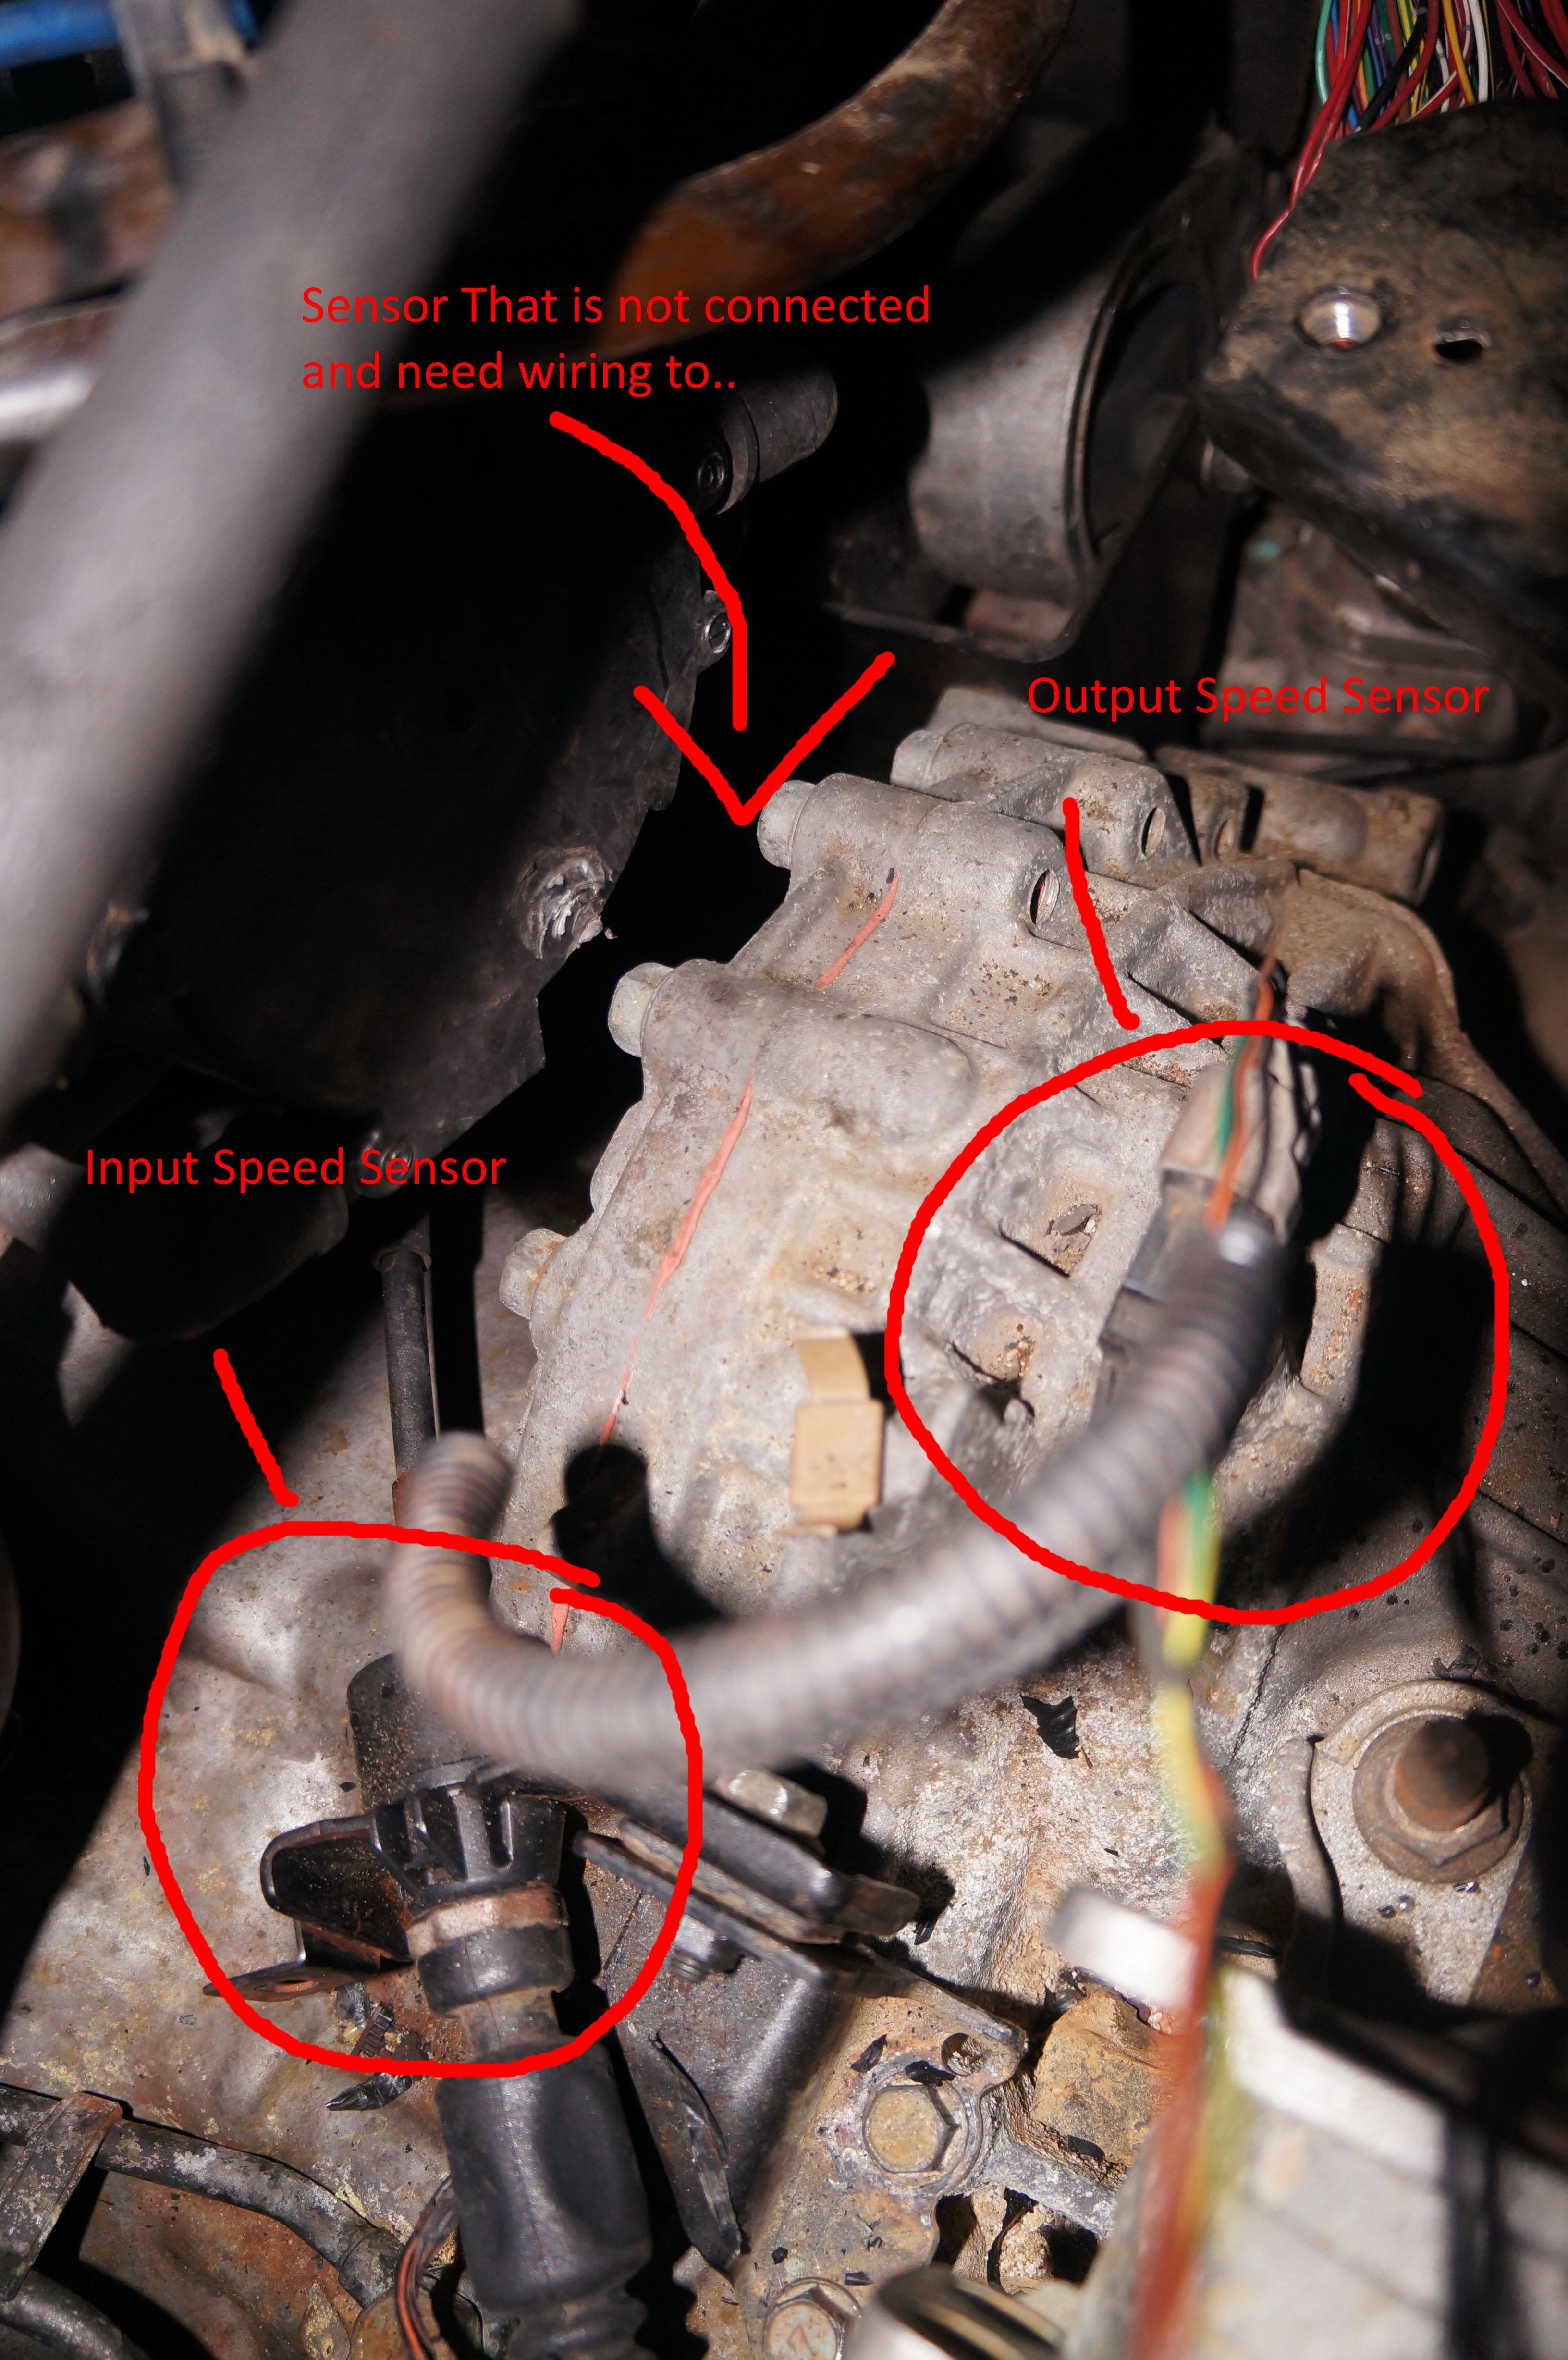 2003 Mitsubishi Eclipse GTS Input Turbin Speed Sensor, Which wires connect  to this sensor? This is the code i get from aJustAnswer